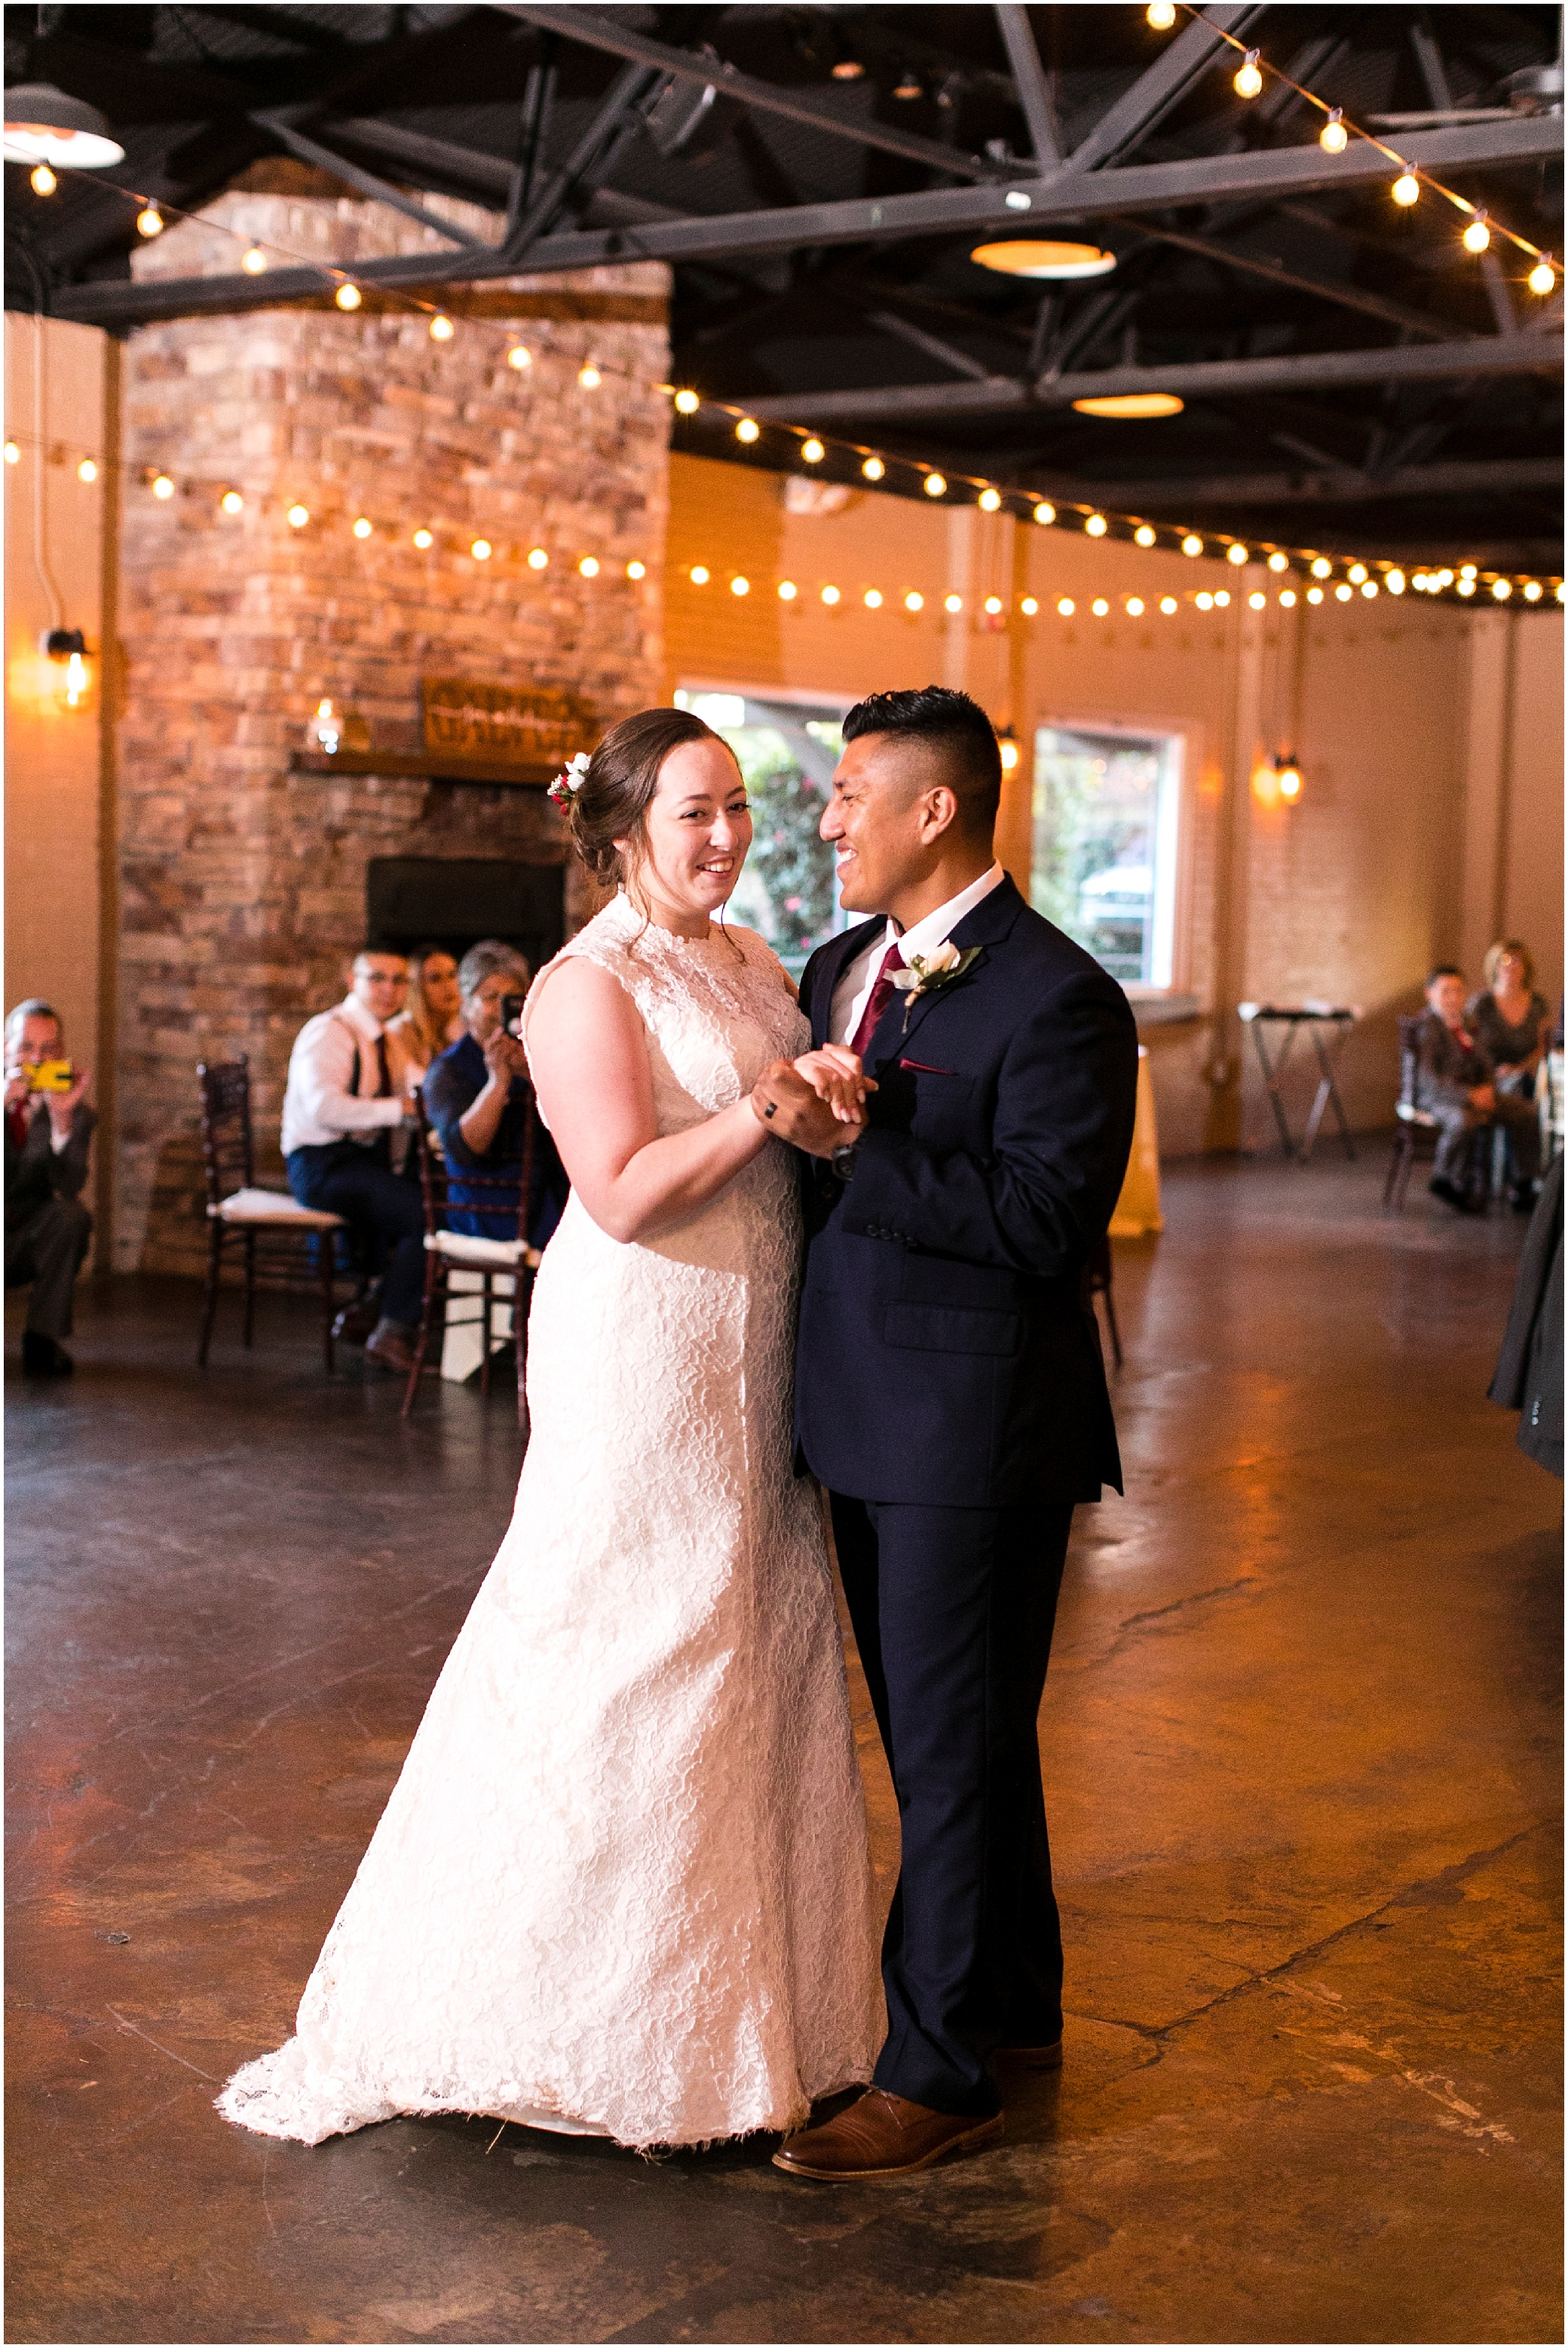 Larkin's Sawmill wedding in Greenville, South Carolina, destination wedding photographer